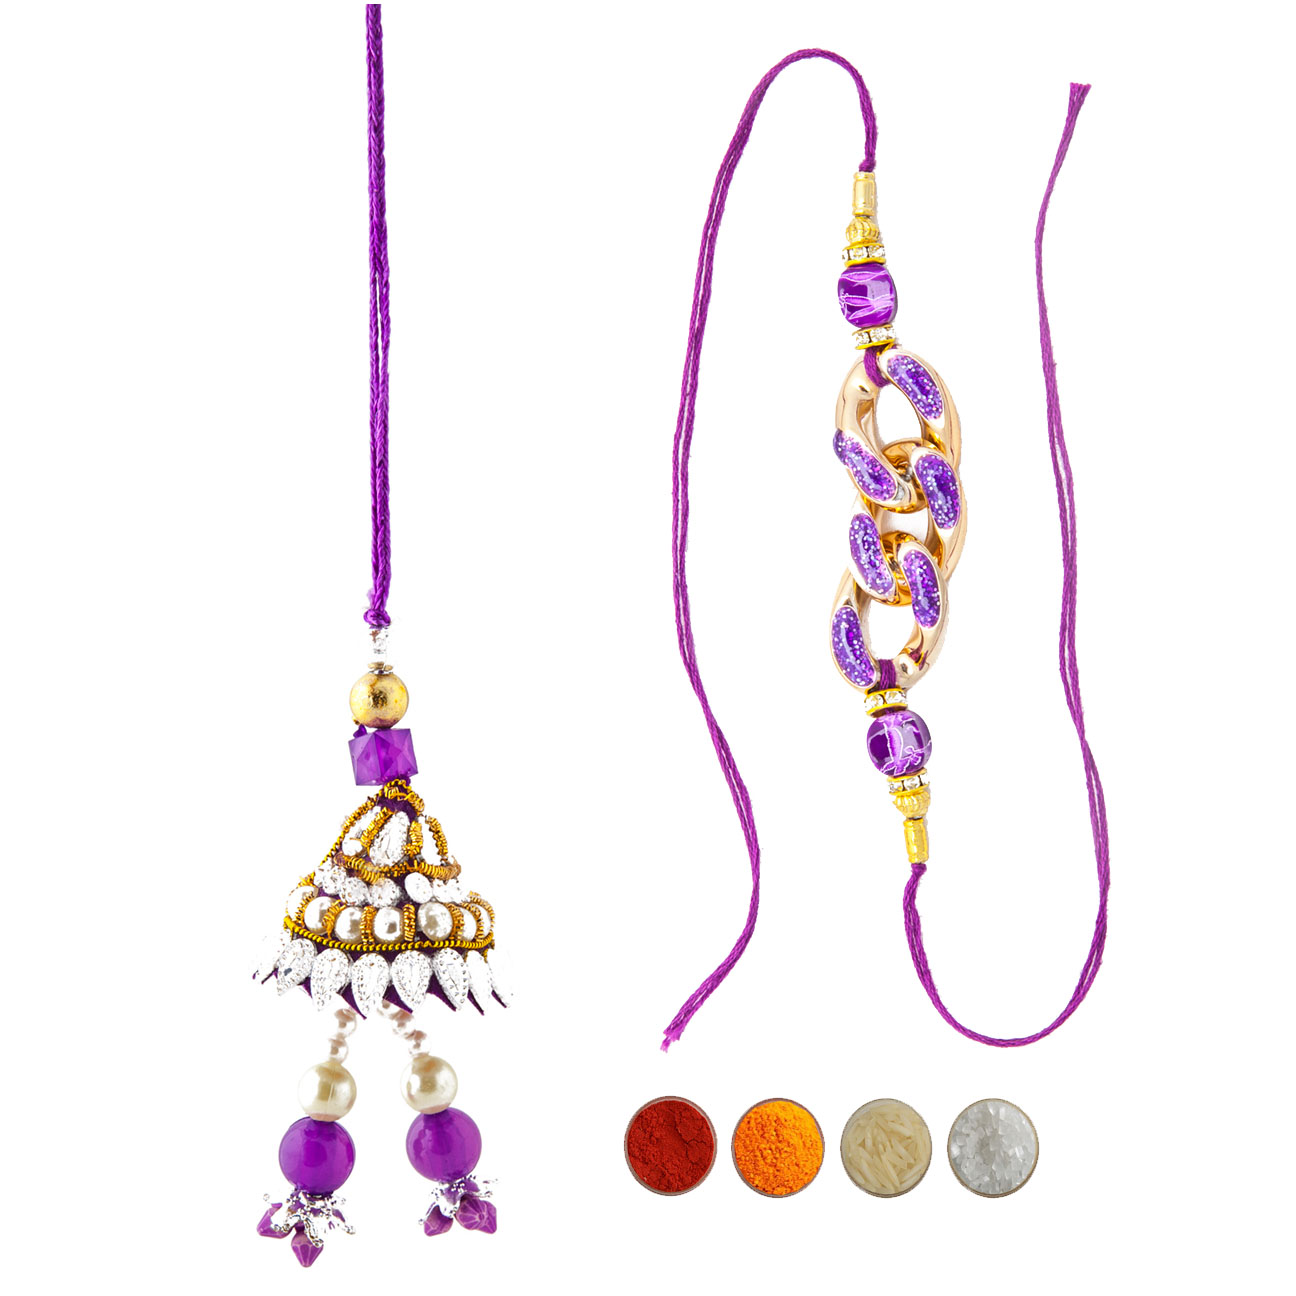 Designer Rakhi Set for Bhaiya Bhabhi